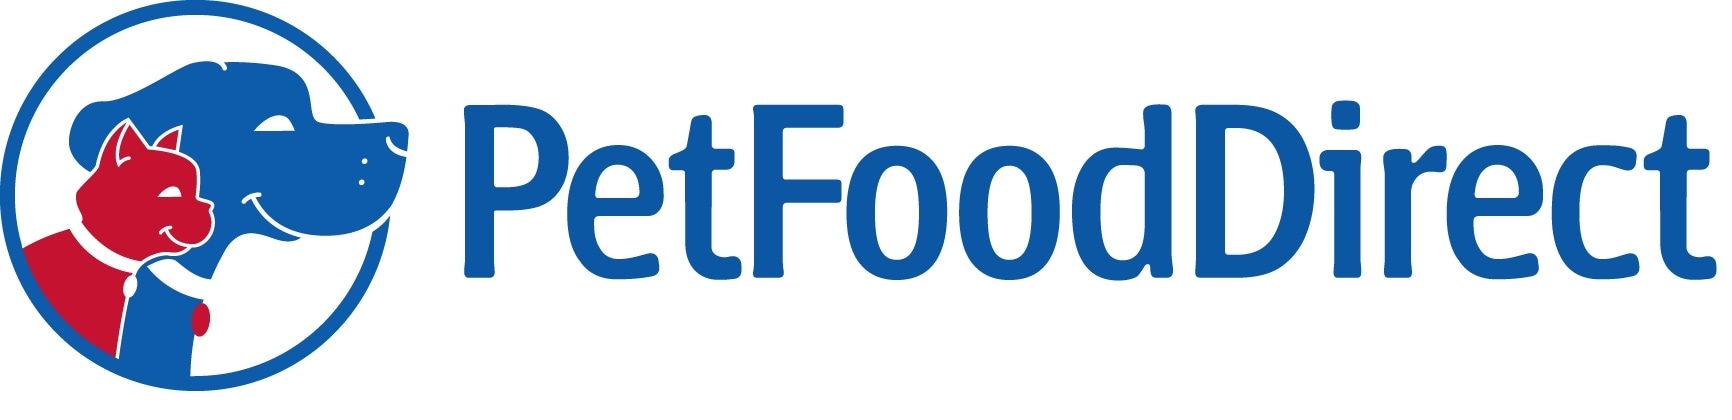 PetFoodDirect promo codes